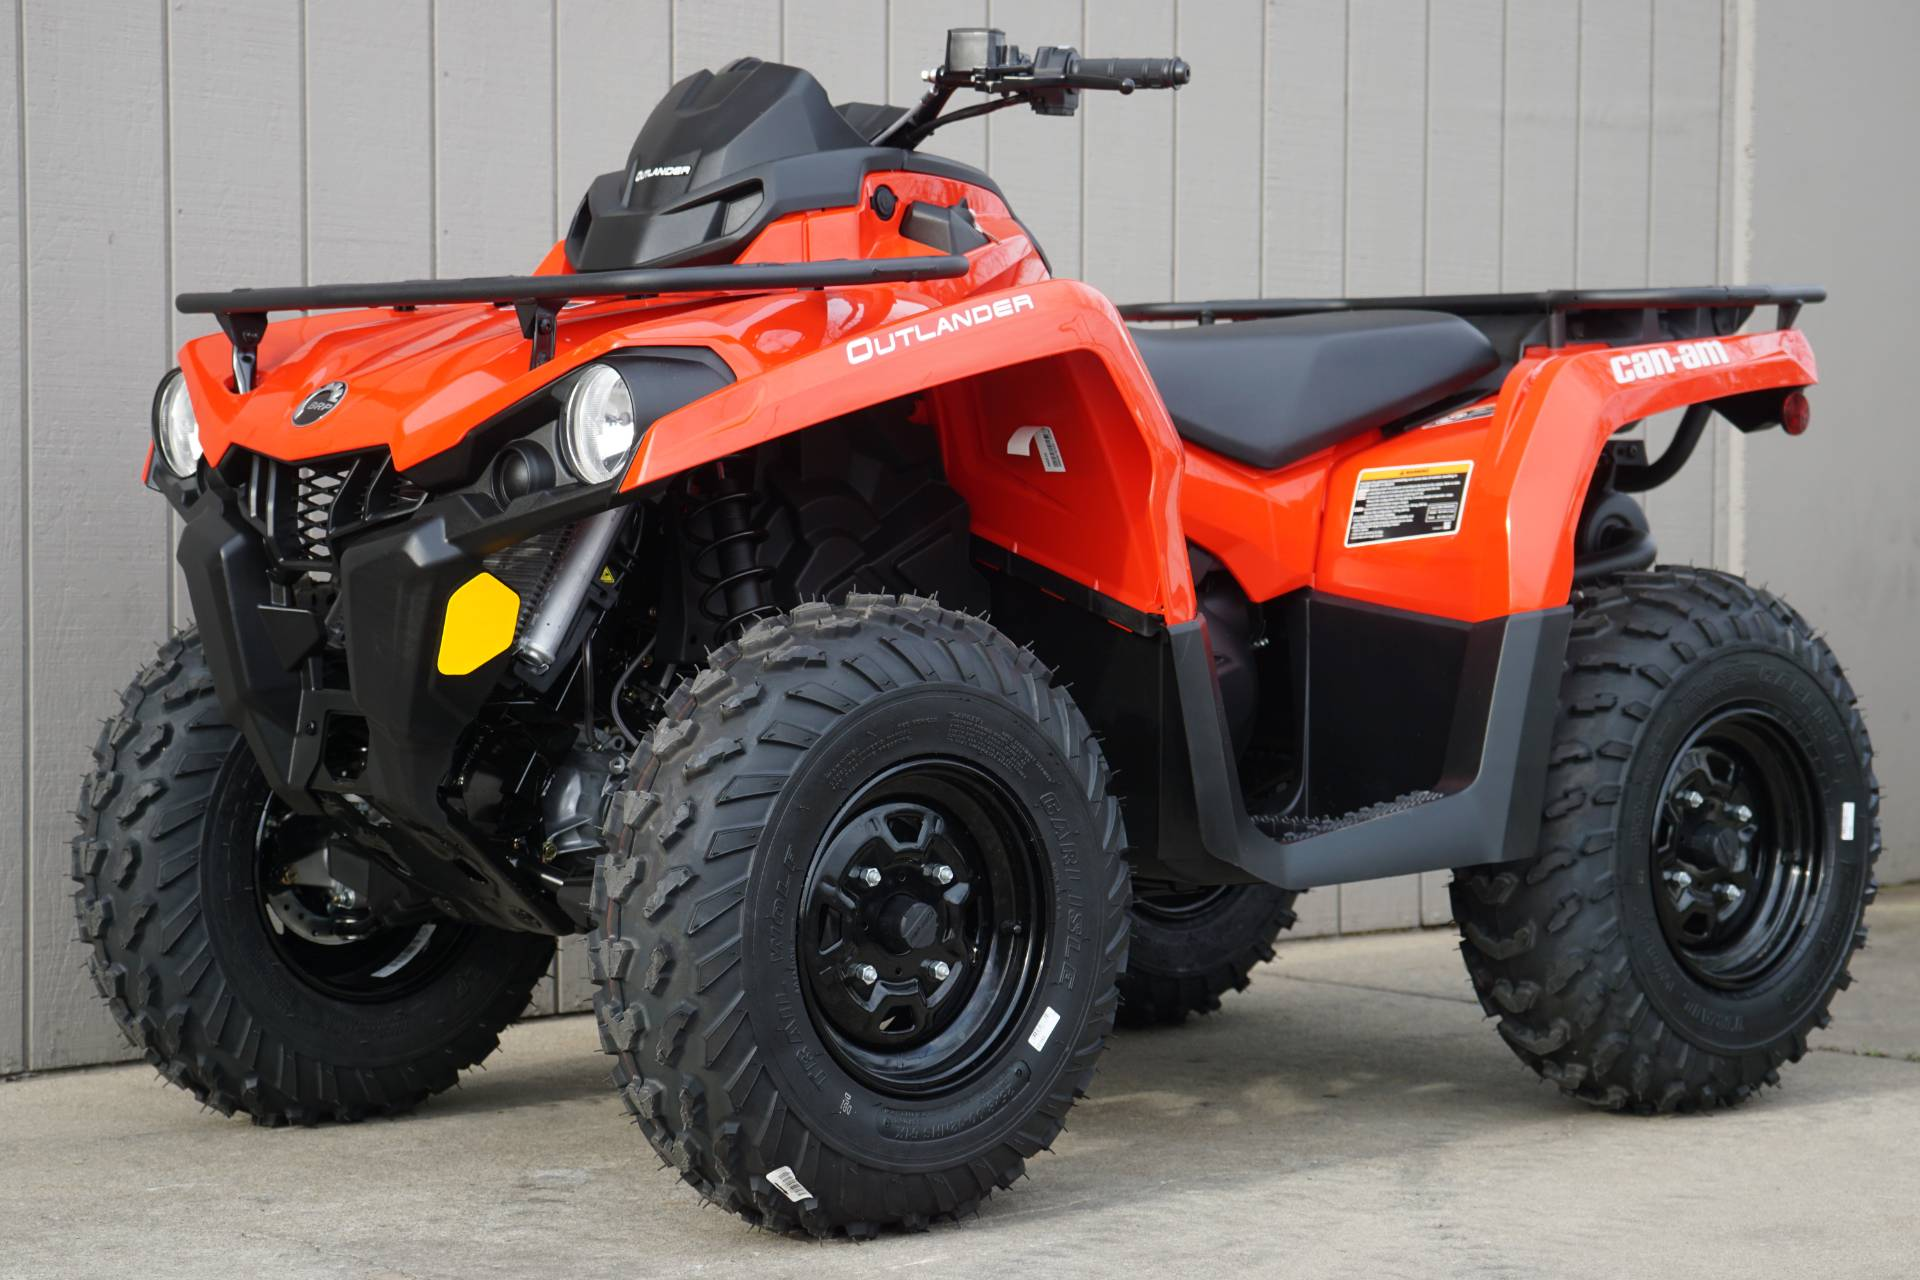 2019 Can-Am Outlander 450 for sale 79081